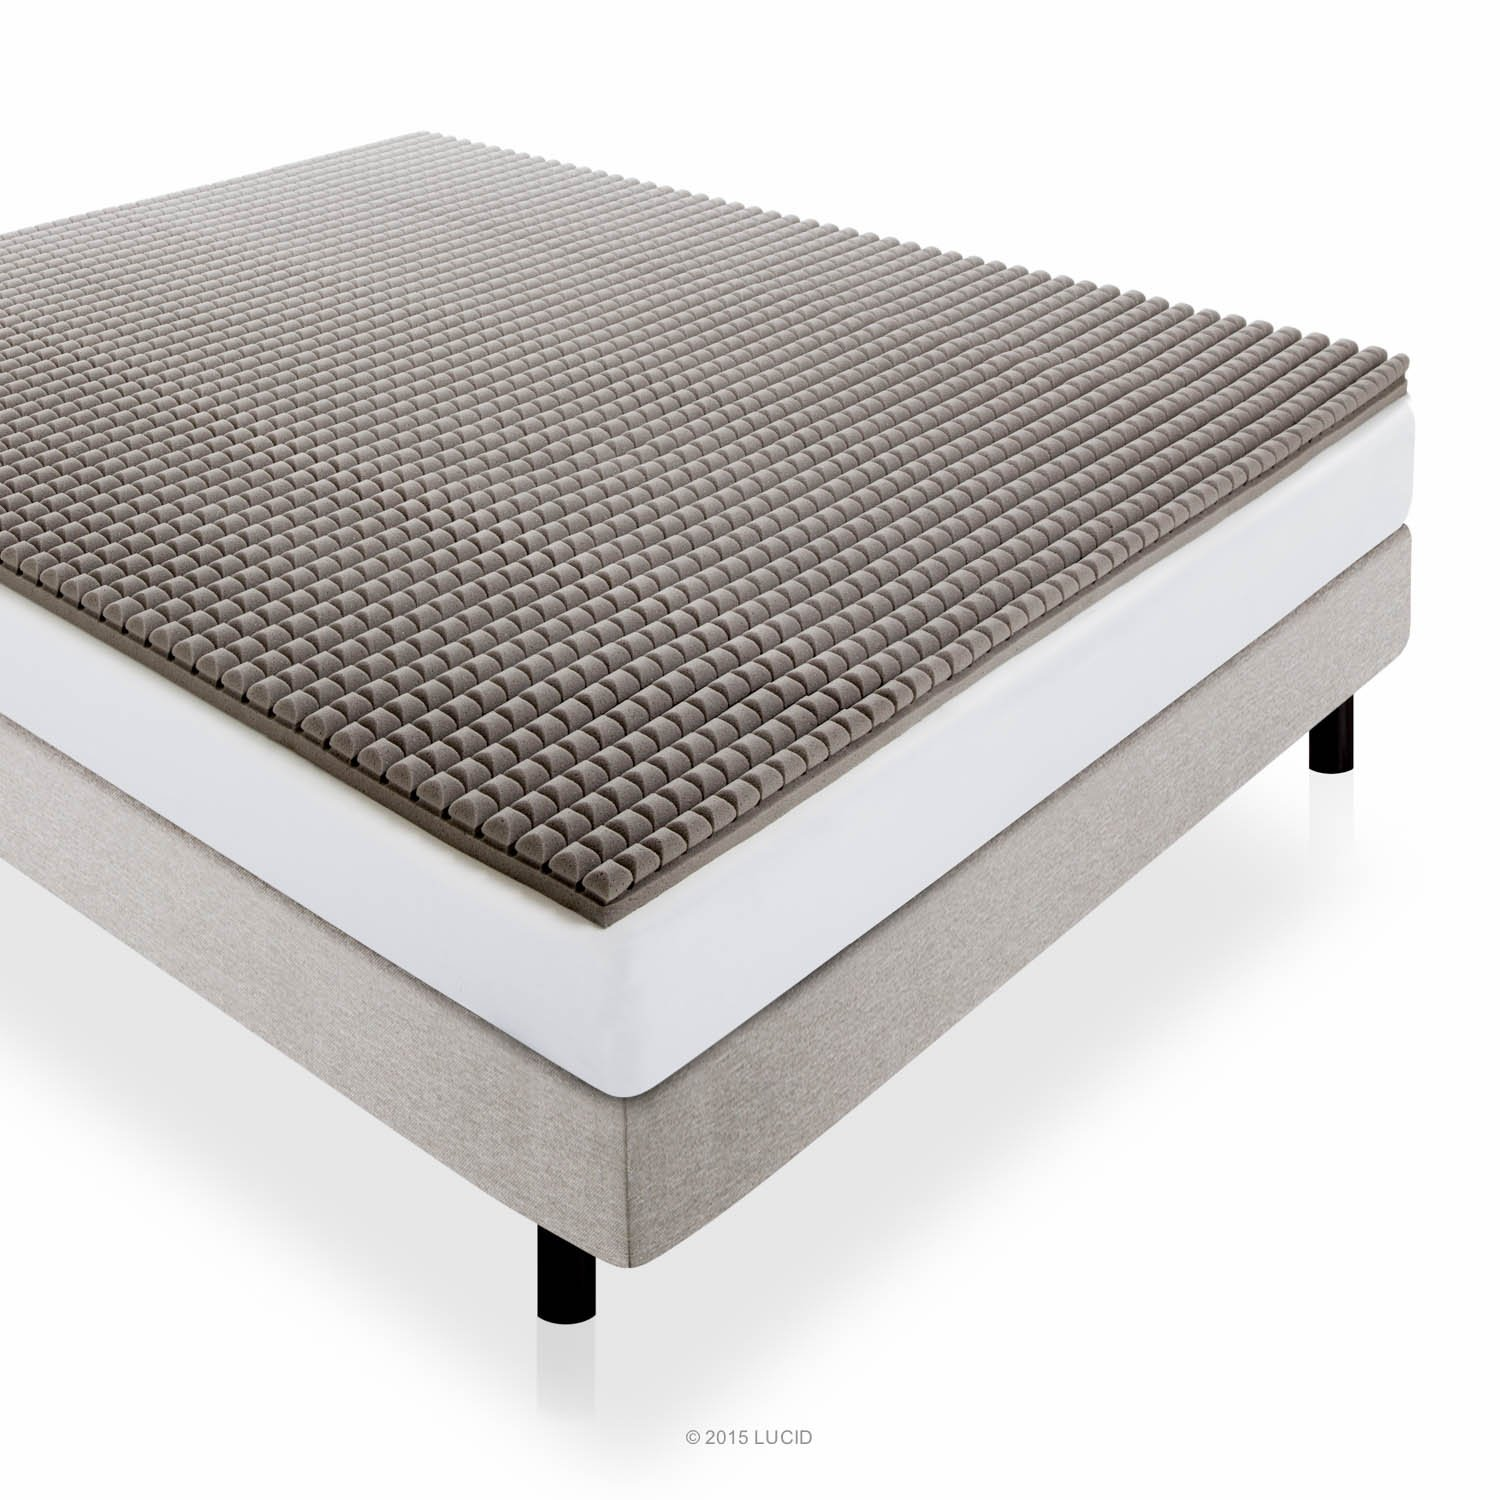 Lucid 2-Inch Bamboo Charcoal Ultra Ventilated Memory Foam Mattress Topper,  Queen Size: Amazon.ca: Home & Kitchen